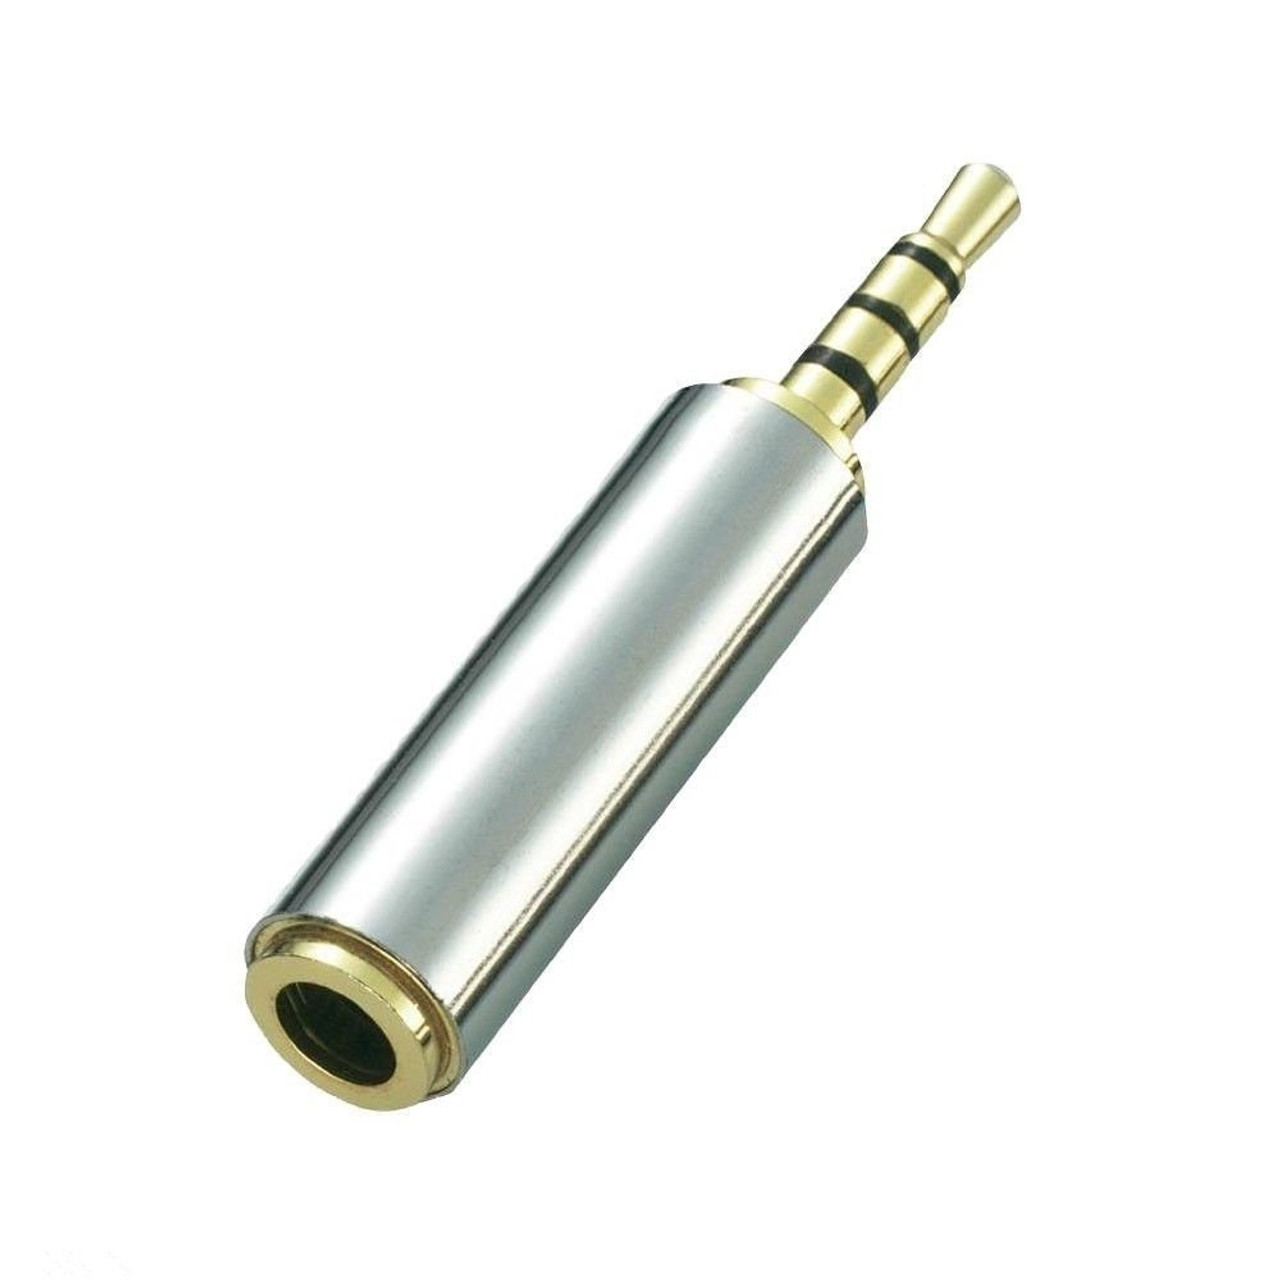 2.5mm Male to 3.5mm Female 3-Ring Audio Adapter